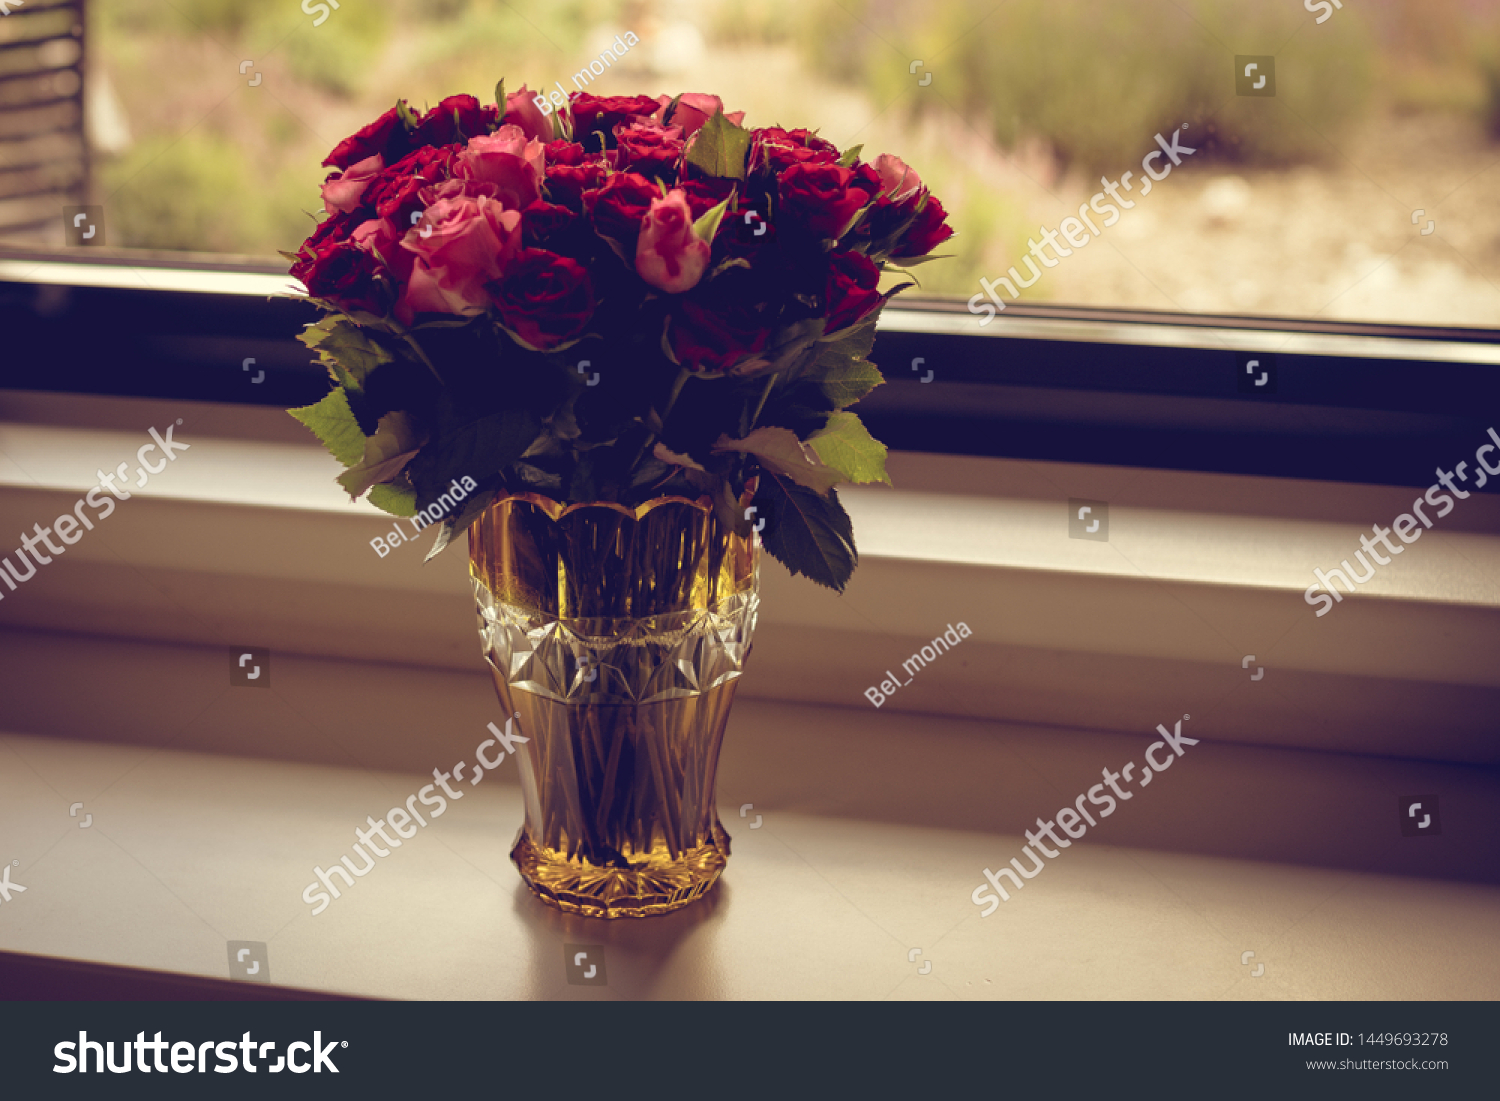 Bouquet Red Pink Roses Arranged Glass Stock Photo Edit Now 1449693278